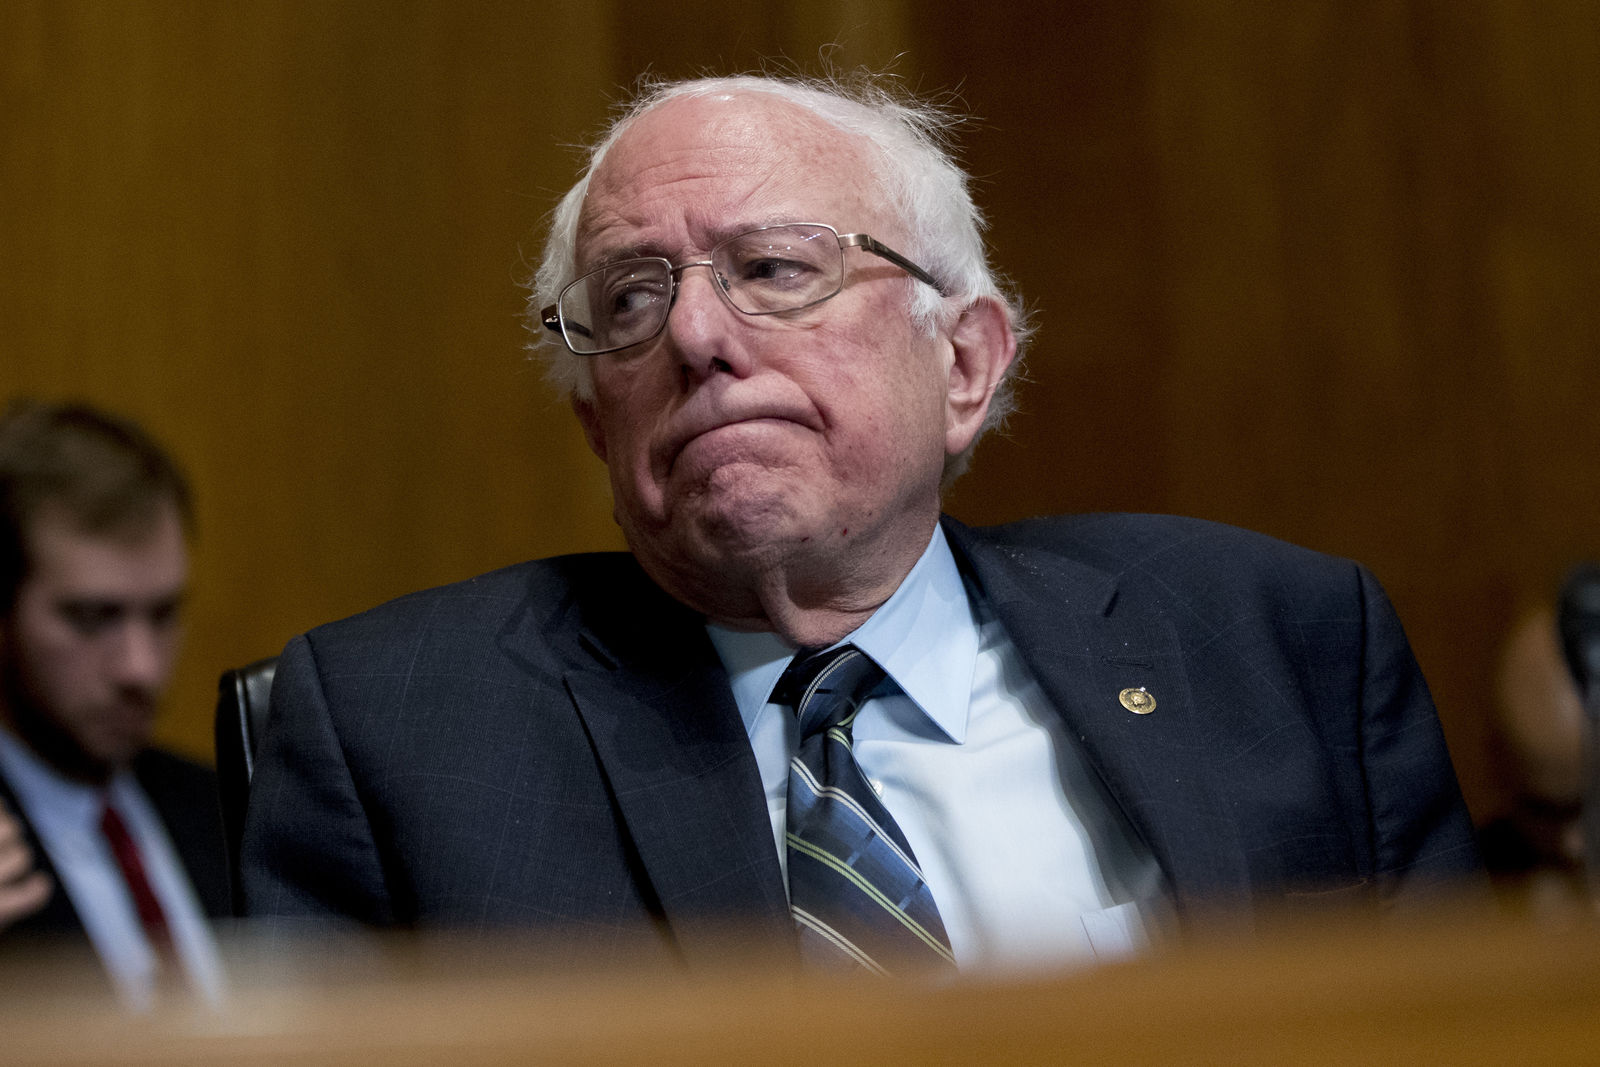 Sen. Bernie Sanders, I-Vt., reacts after questioning Andrew Wheeler as he testifies at a Senate Environment and Public Works Committee hearing to be the administrator of the Environmental Protection Agency, on Capitol Hill in Washington, Wednesday, Jan. 16, 2019. (AP Photo/Andrew Harnik)